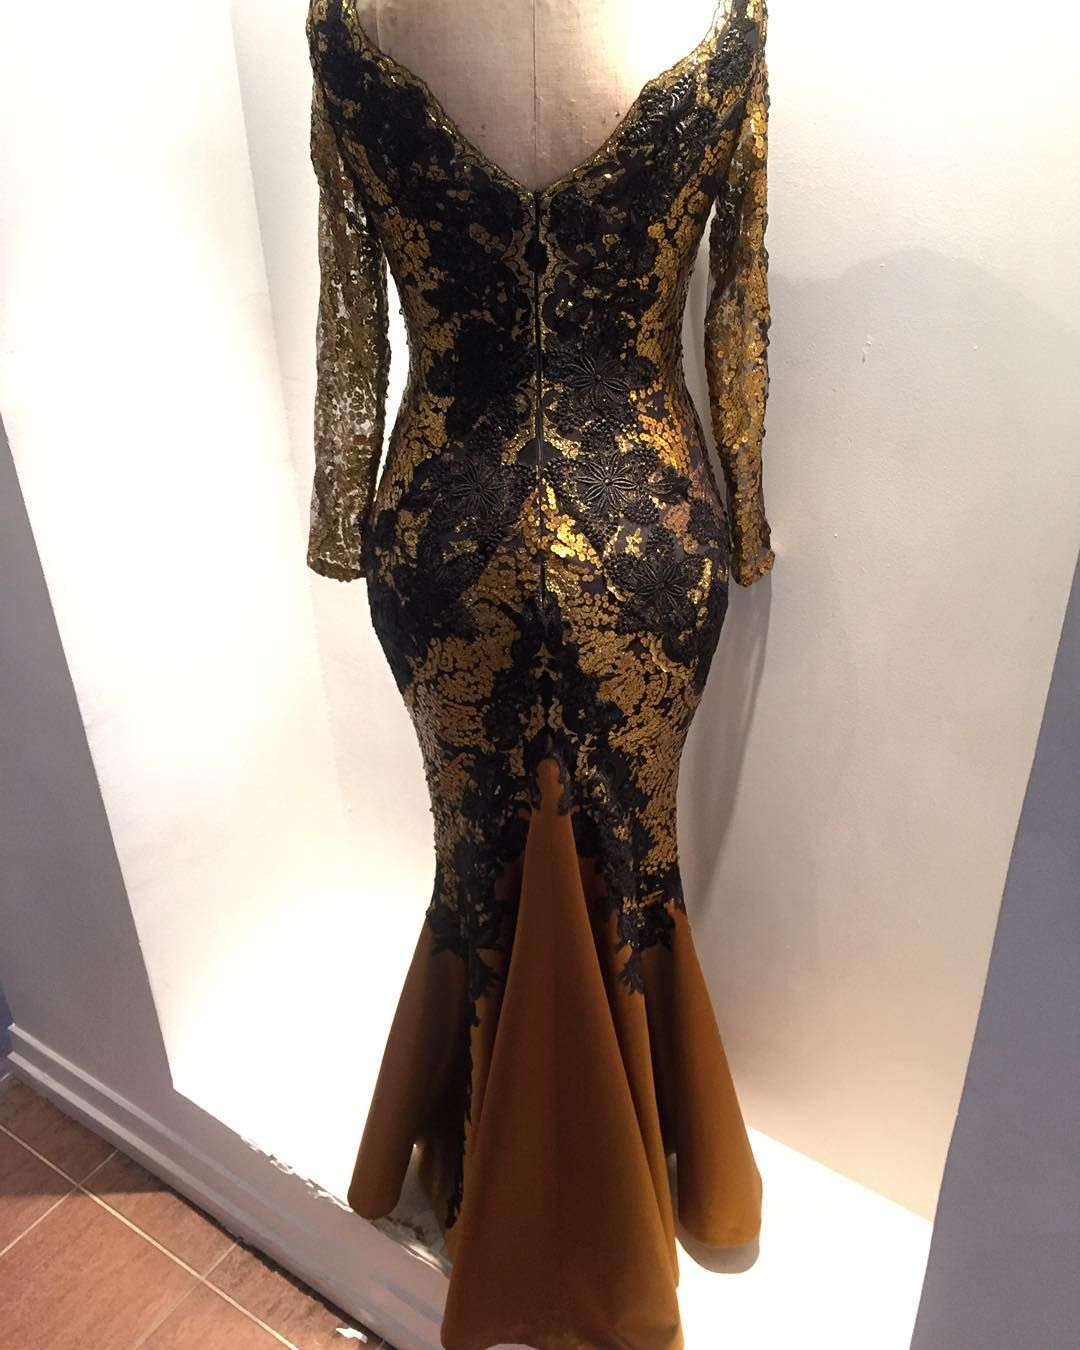 Back view #deolabydeolasagoe #weddingguest #black #gold #lace #sequins #dress #bespoke